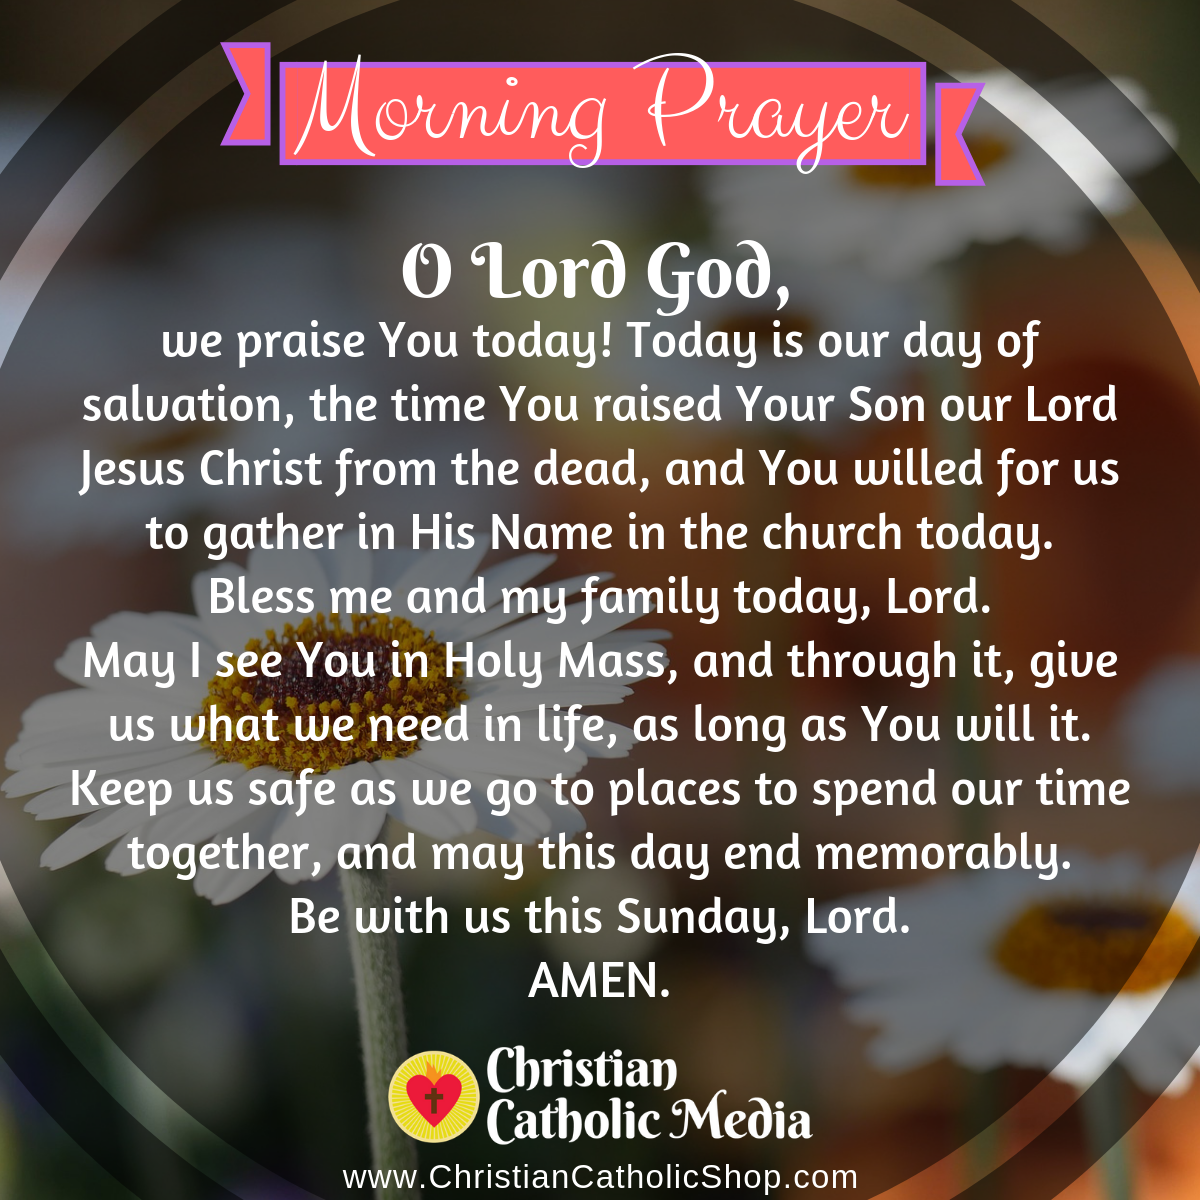 Morning Prayer Catholic Thursday 12-26-2019